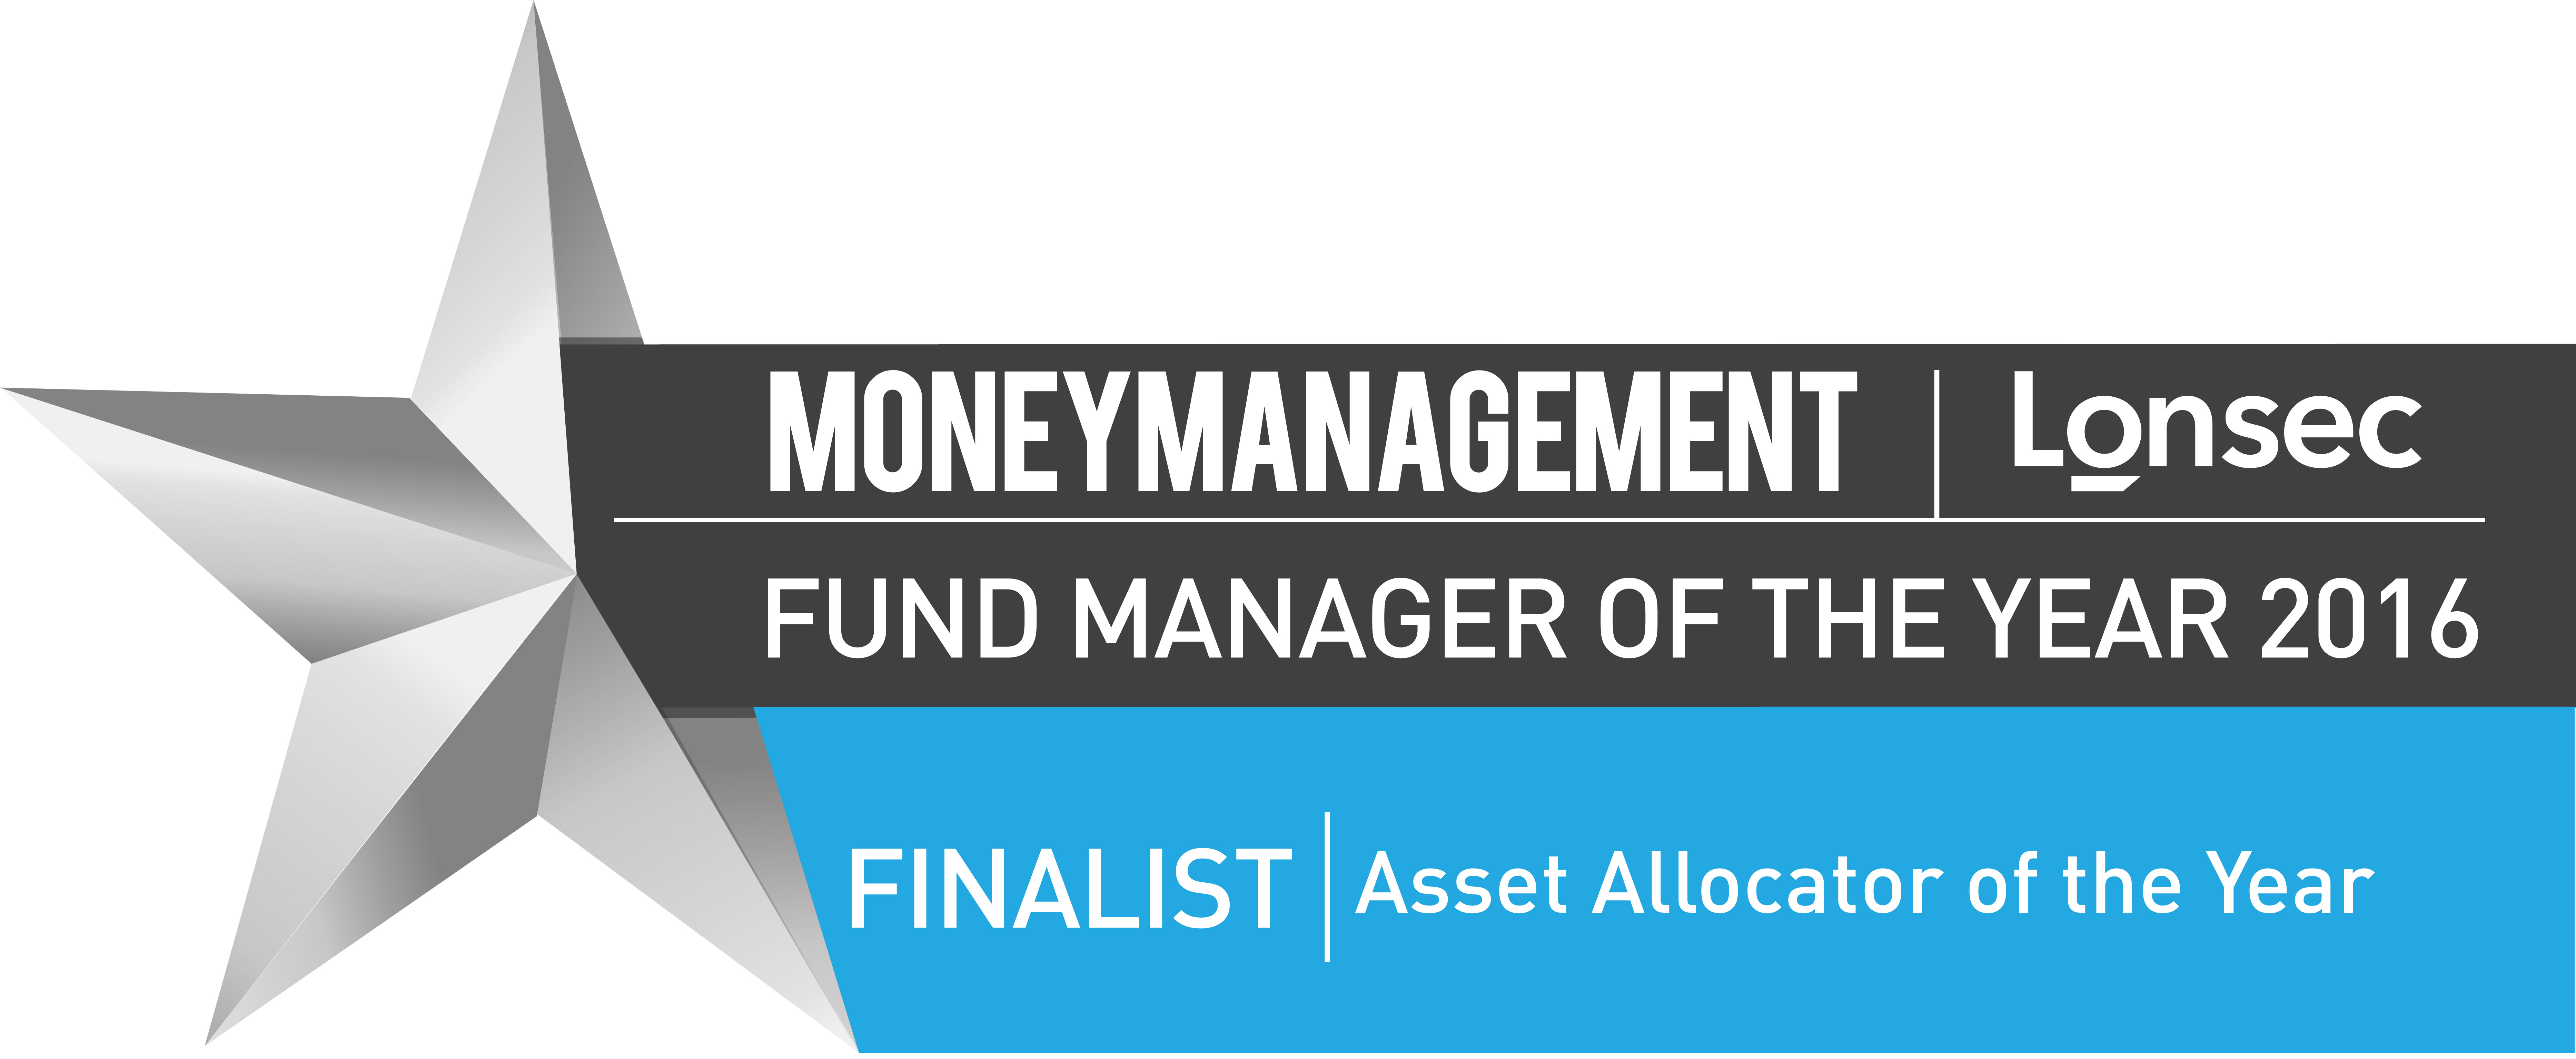 Money Management asset allocator of the year